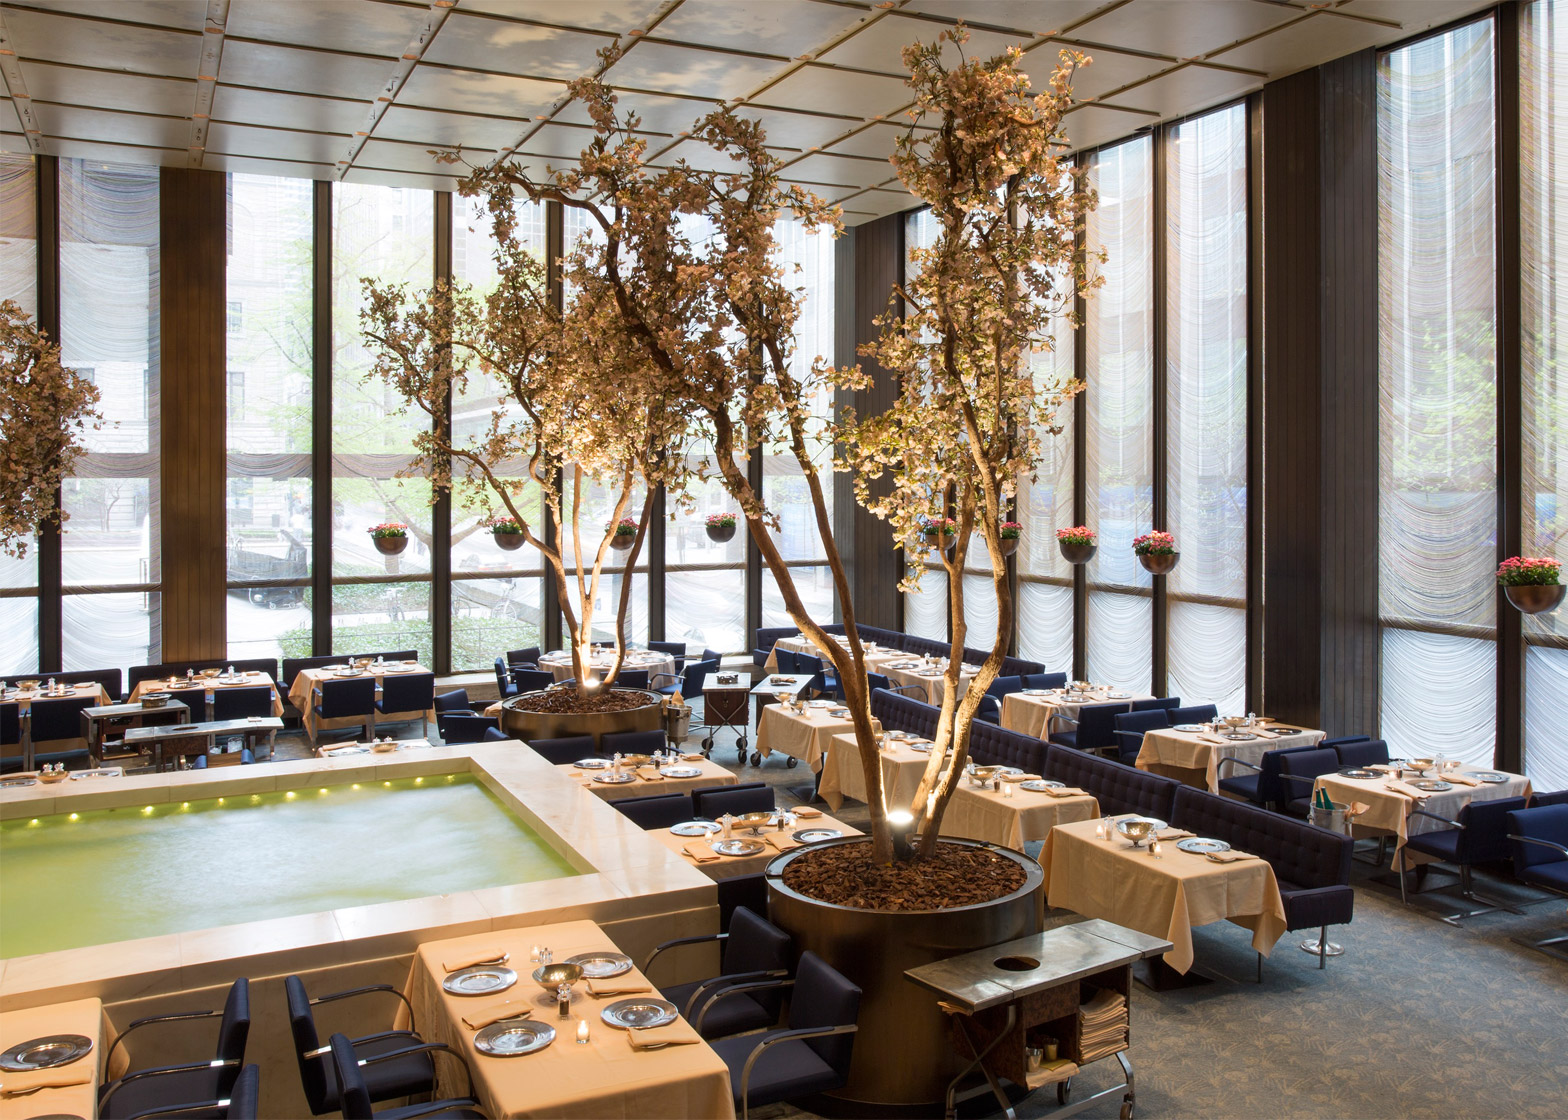 Critics slam Philip Johnson Four Seasons restaurant auction